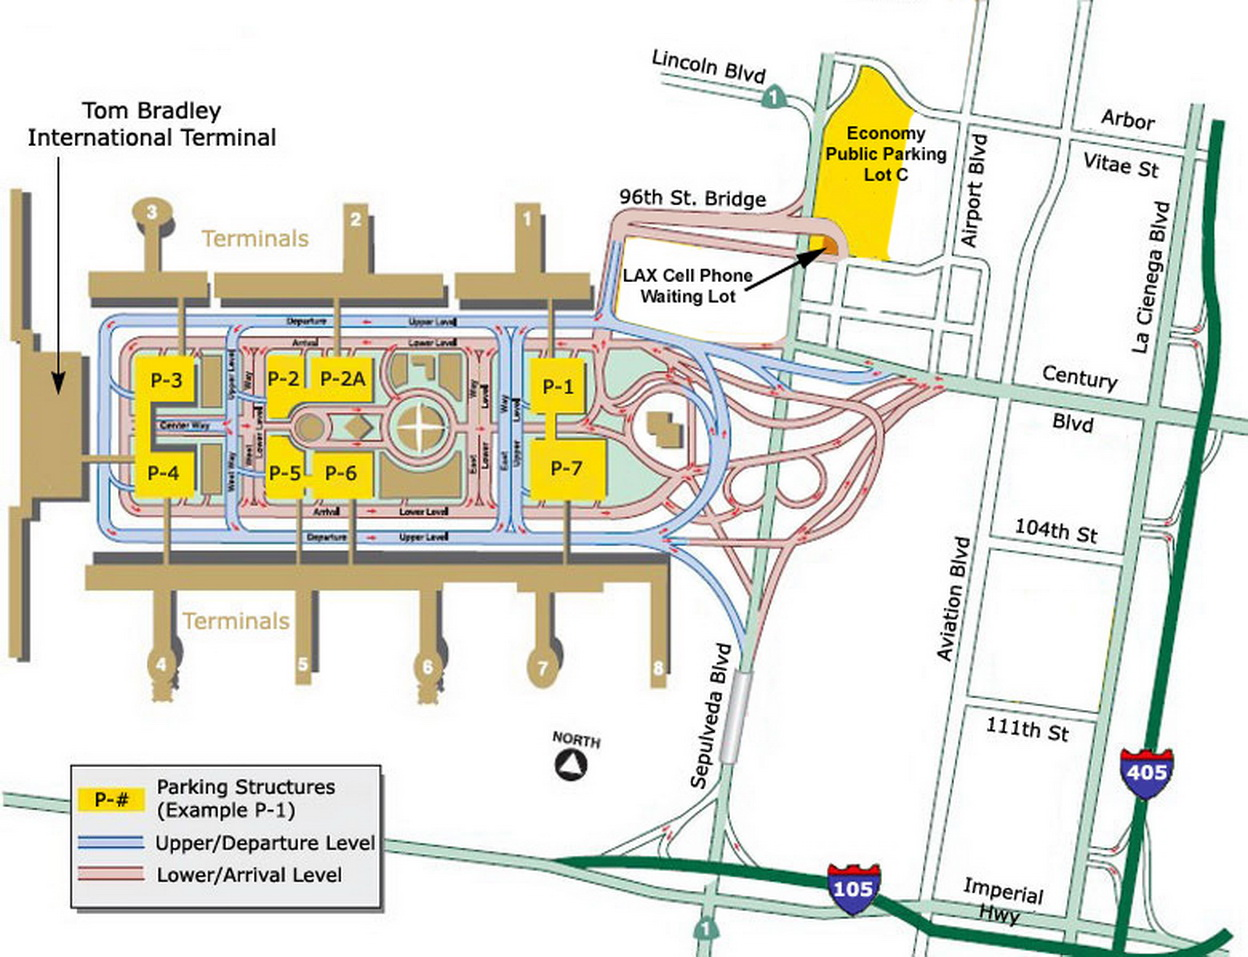 Airport parking map lax airport parking for Lax long term parking lot